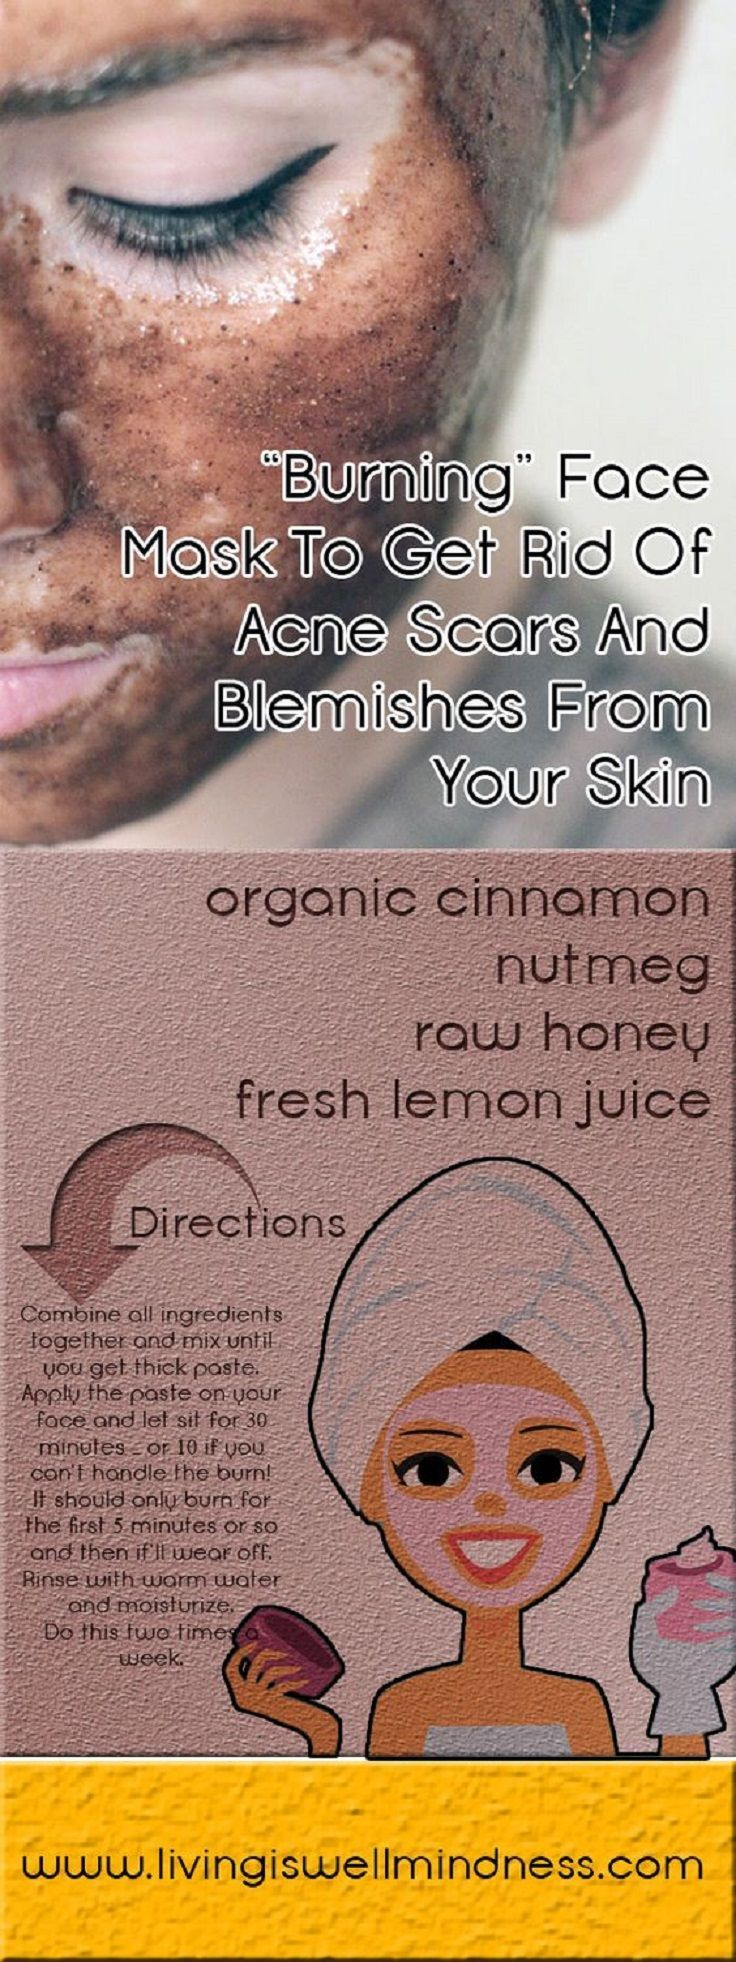 Burning Face Mask To Get Rid of Acne Scars And Blemishes from Your Skin - 14 Proven Homemade Acne Remedies That Cure Acne Fast and On A Budget